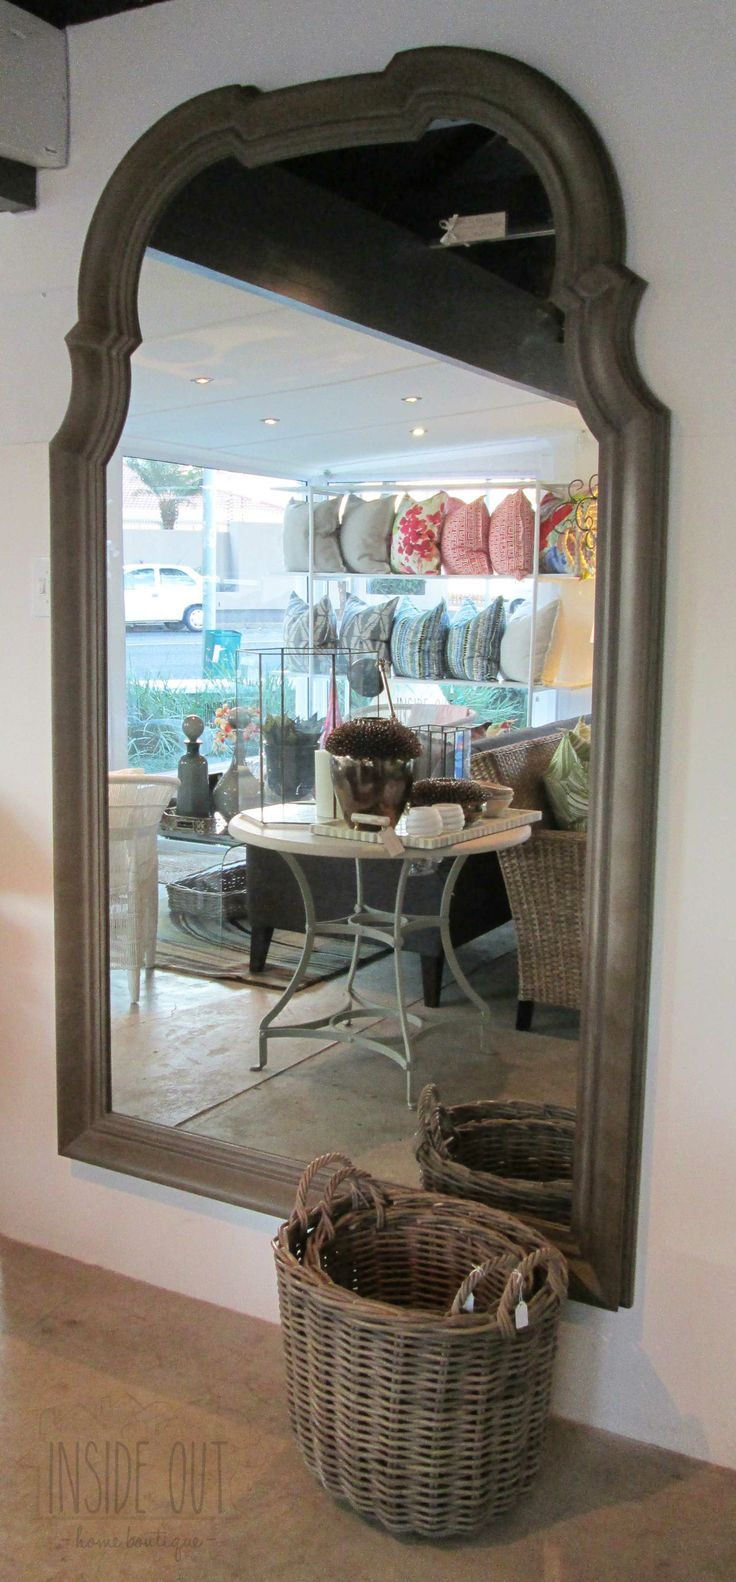 Arch Mirror, Distressed Oak Finish - 2100mm x 1220mm - Inside Out Home Boutique - Please check stock availability